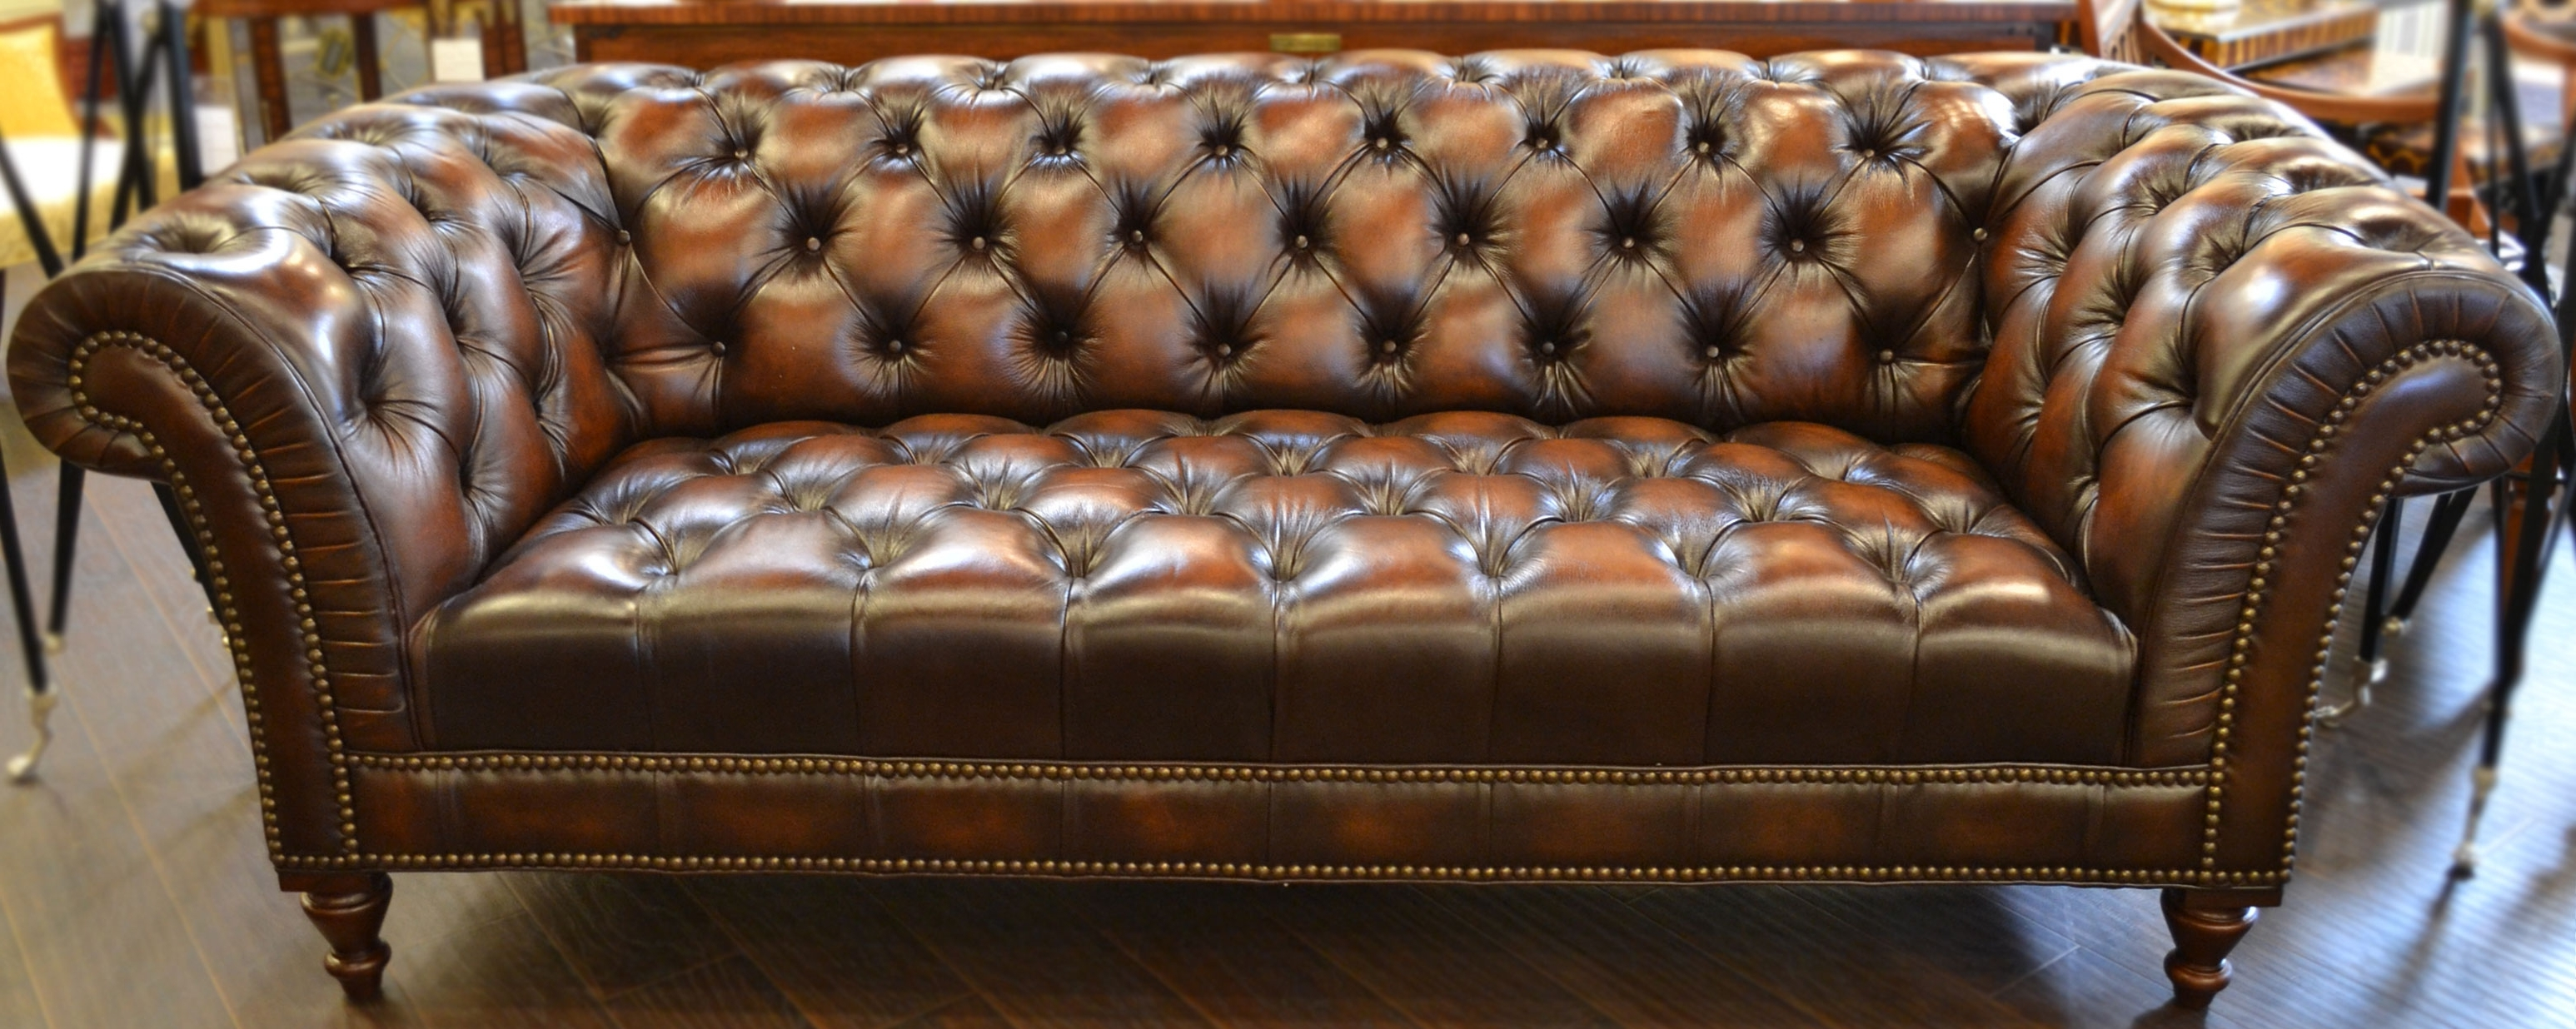 High End Sofas Pertaining To Newest High End Leather Sofa – Visionexchange (View 20 of 20)